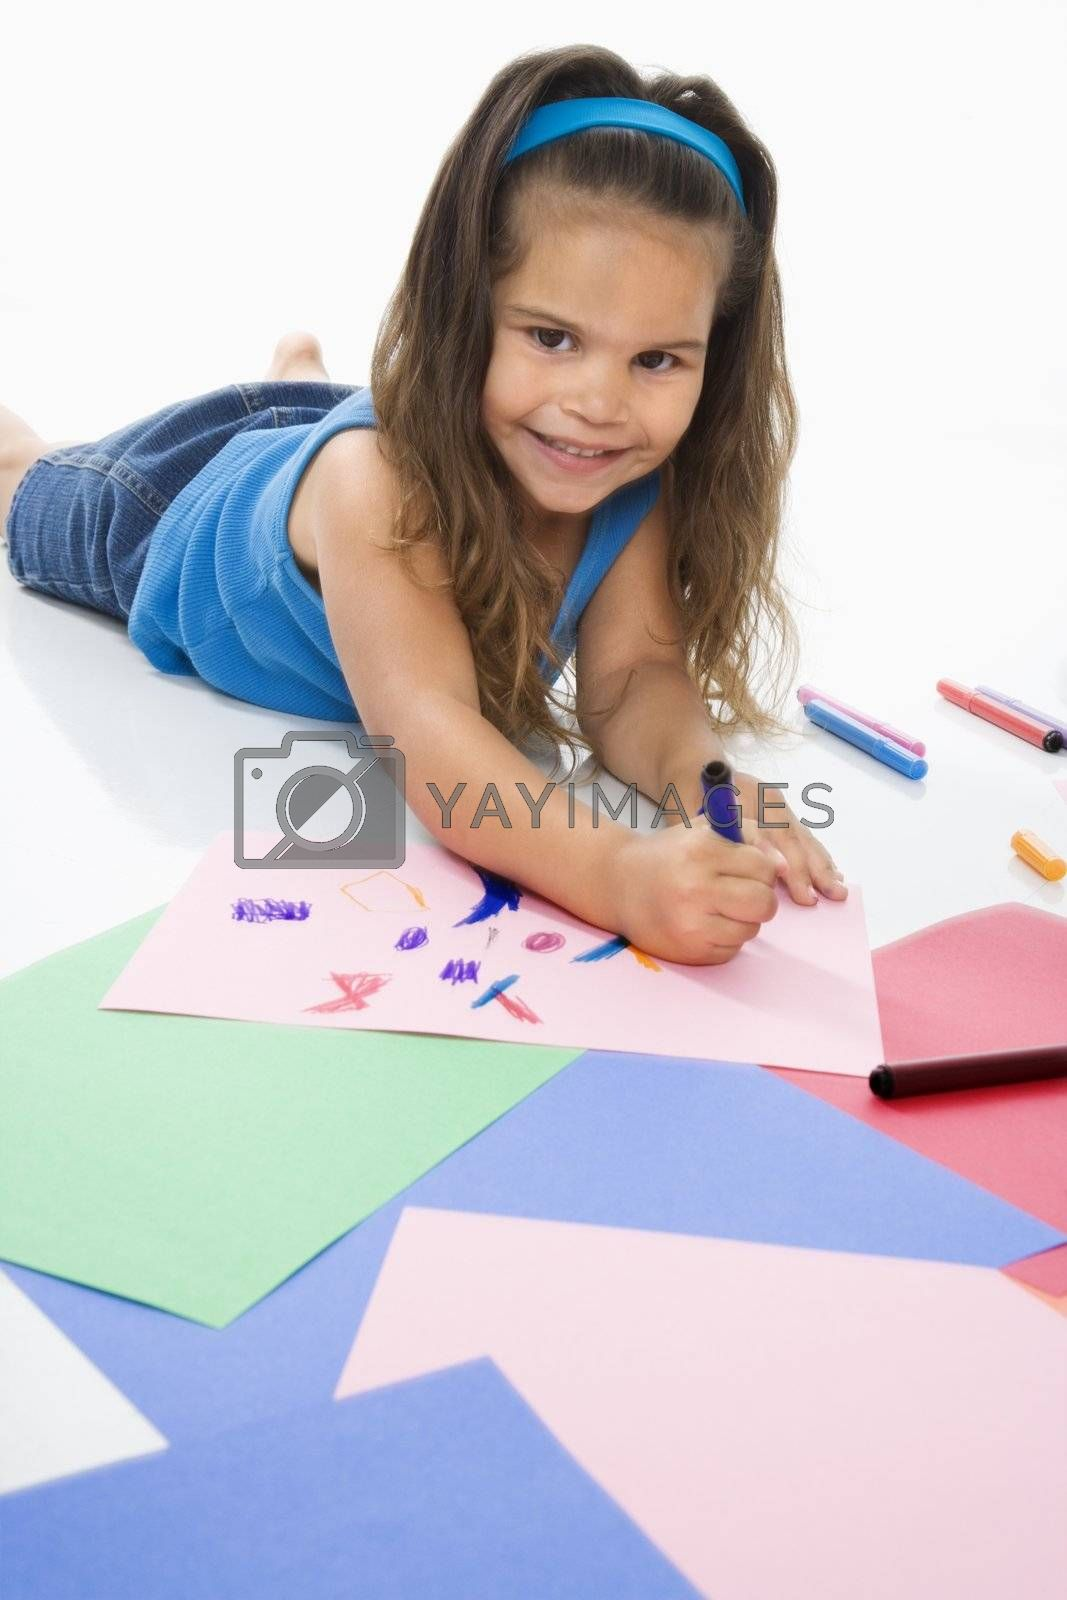 Young latino girl coloring on construction paper and smiling.